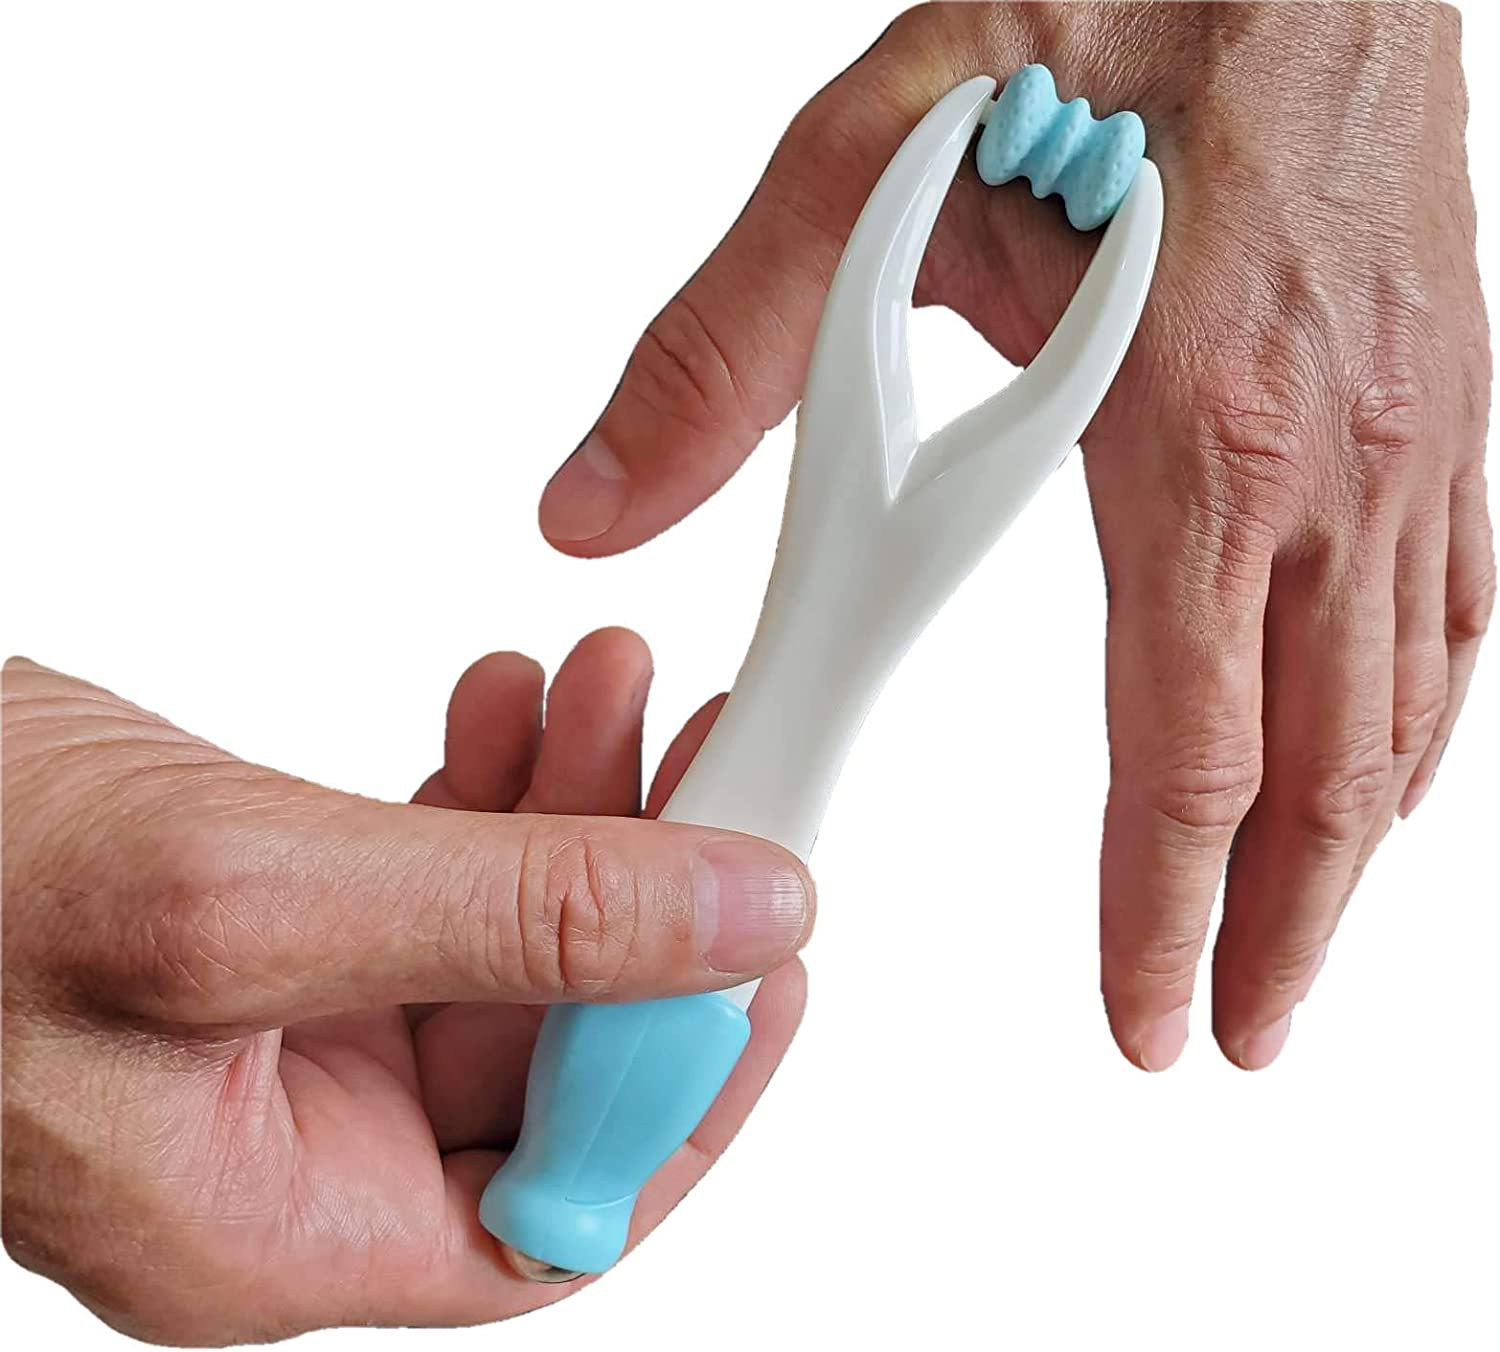 Arthritis Pain Relief , Finger Wrist and Hand Massager for Carpal Tunnel,  Tingling, Stiffness, Fatigue